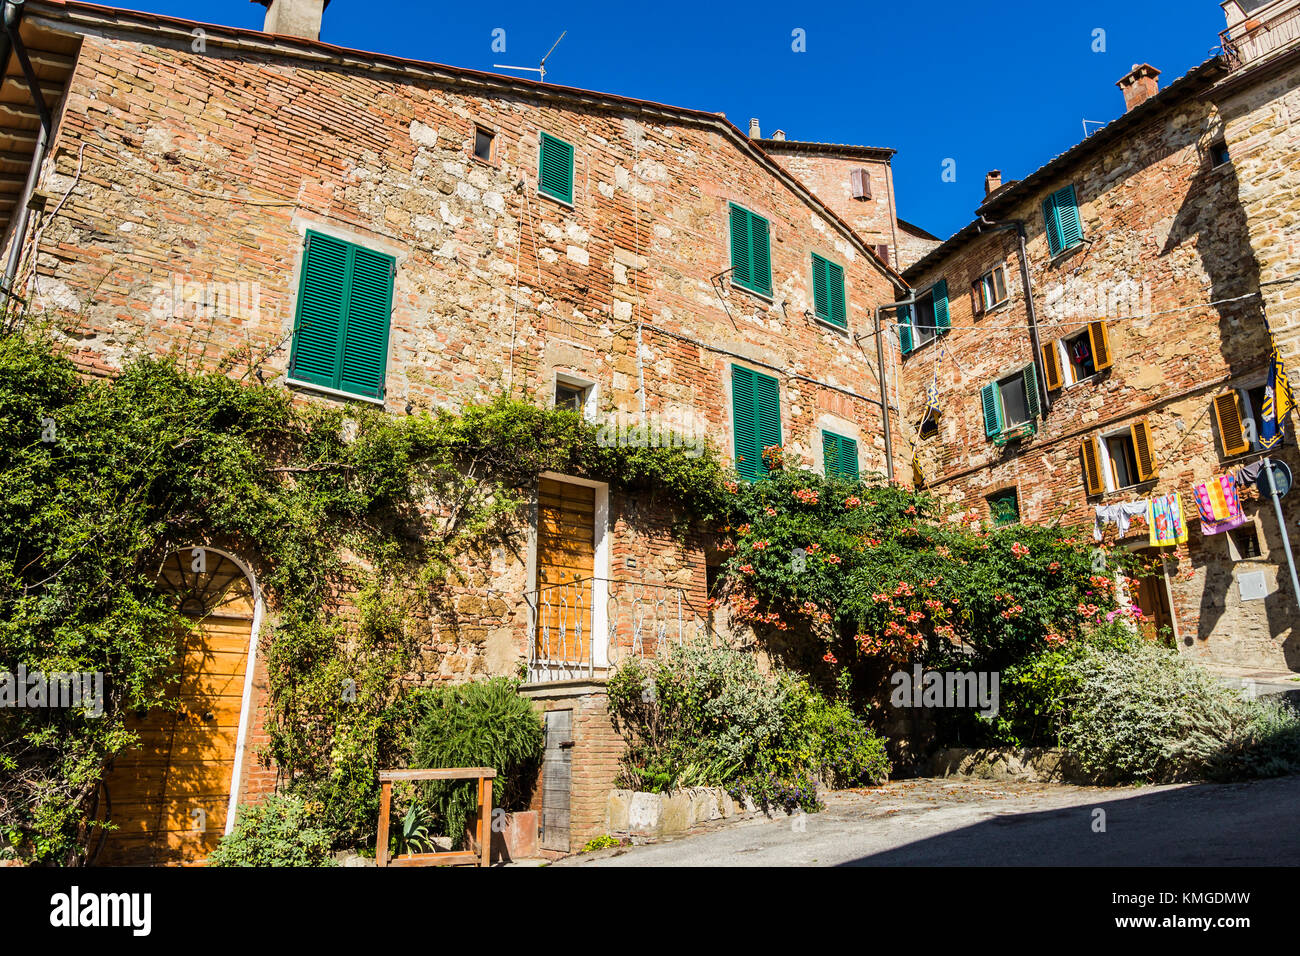 Typical, characteristic stone house with green shutters located in Montepulciano, Tuscany Italy. - Stock Image